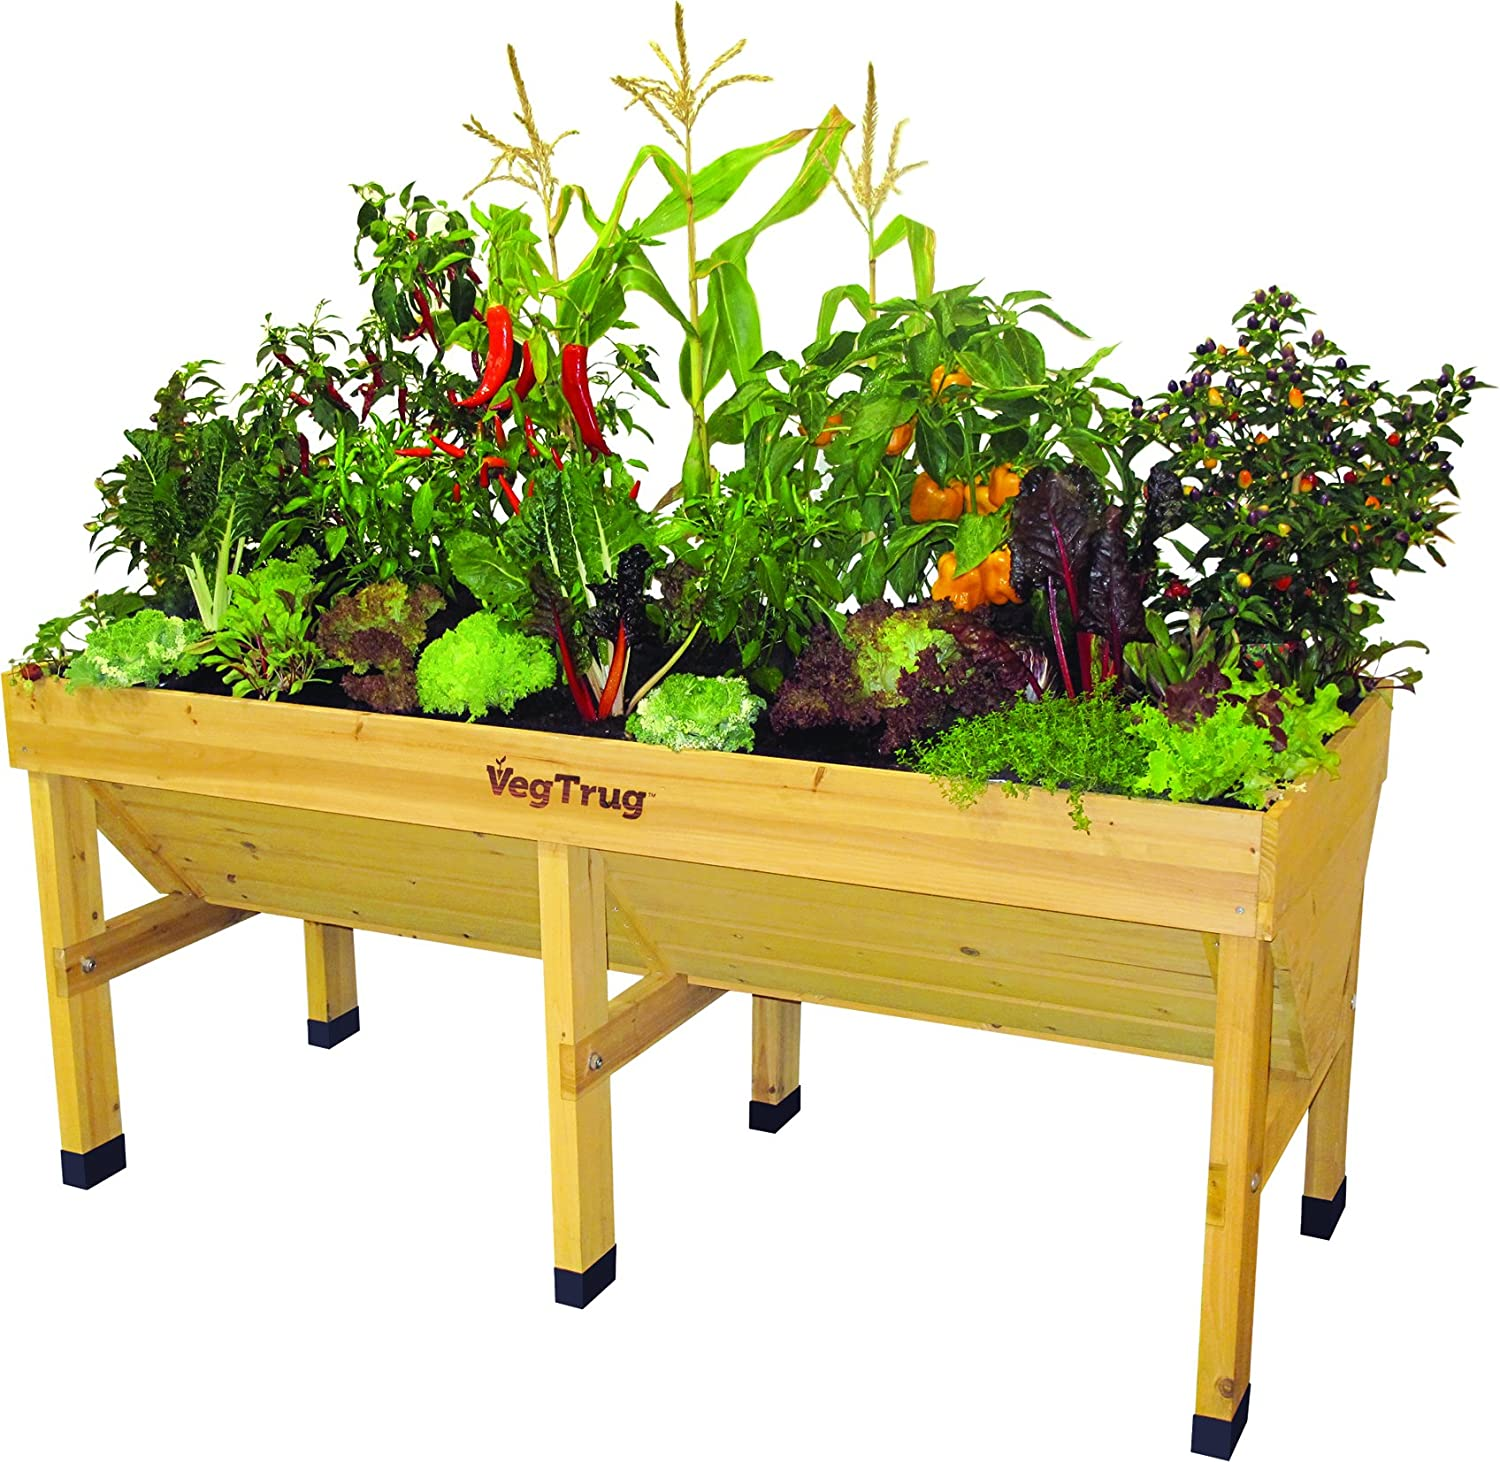 Veg Herb Flower Trug Boxes Large Raised Wooden Garden Trough Planter on Legs